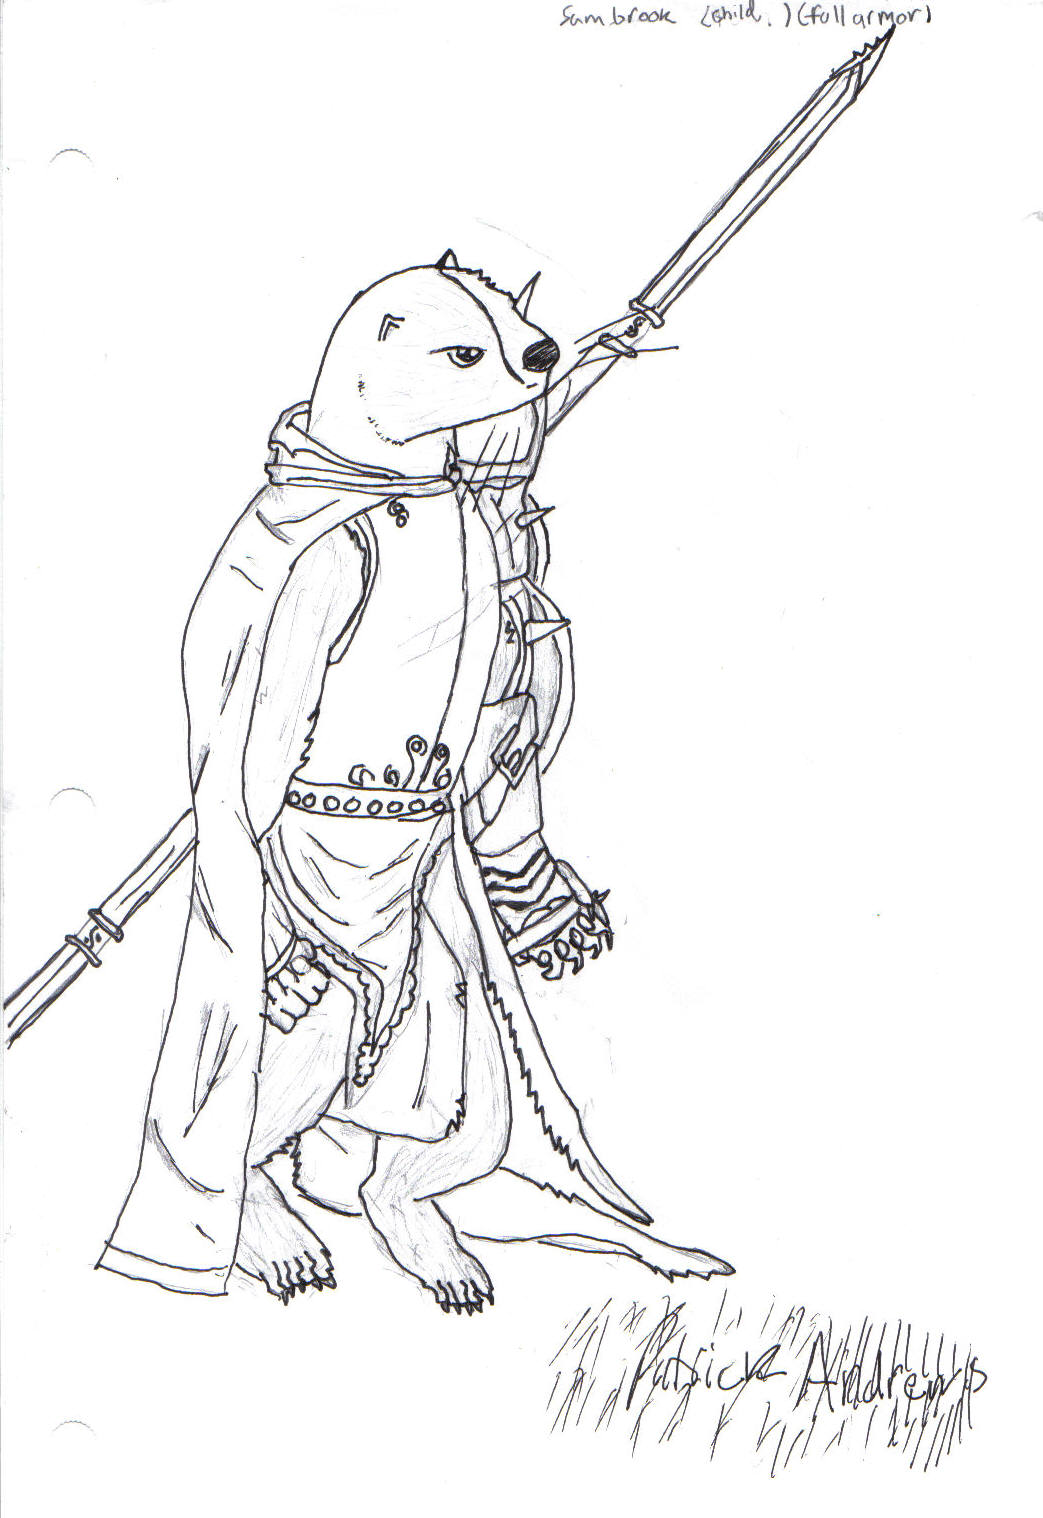 Image Sambrook Child Jpg Redwall Wiki Fandom Redwall Coloring Pages